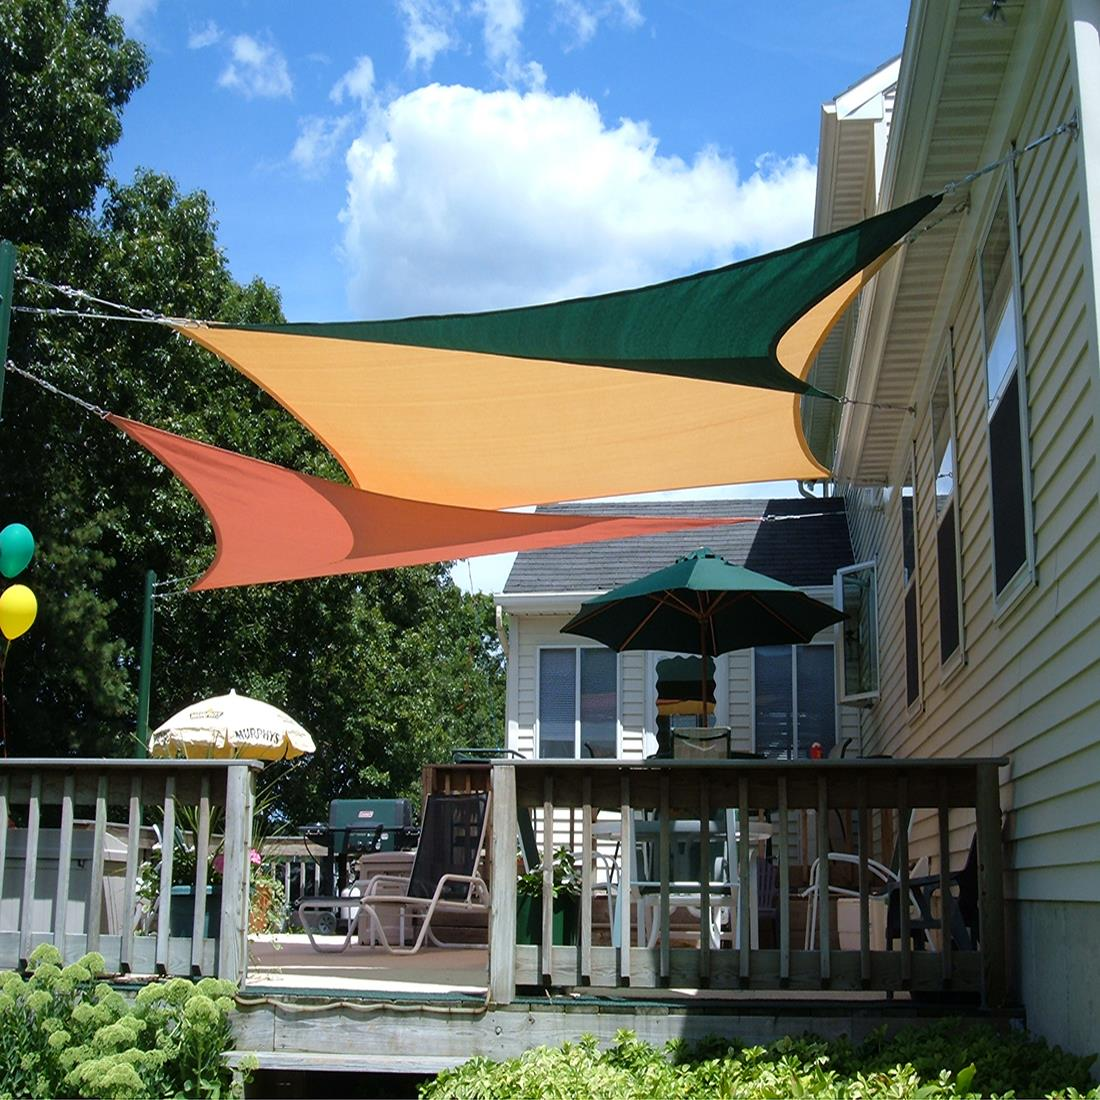 12 16 Canopy : Quictent ft triangle sun shade sail patio pool